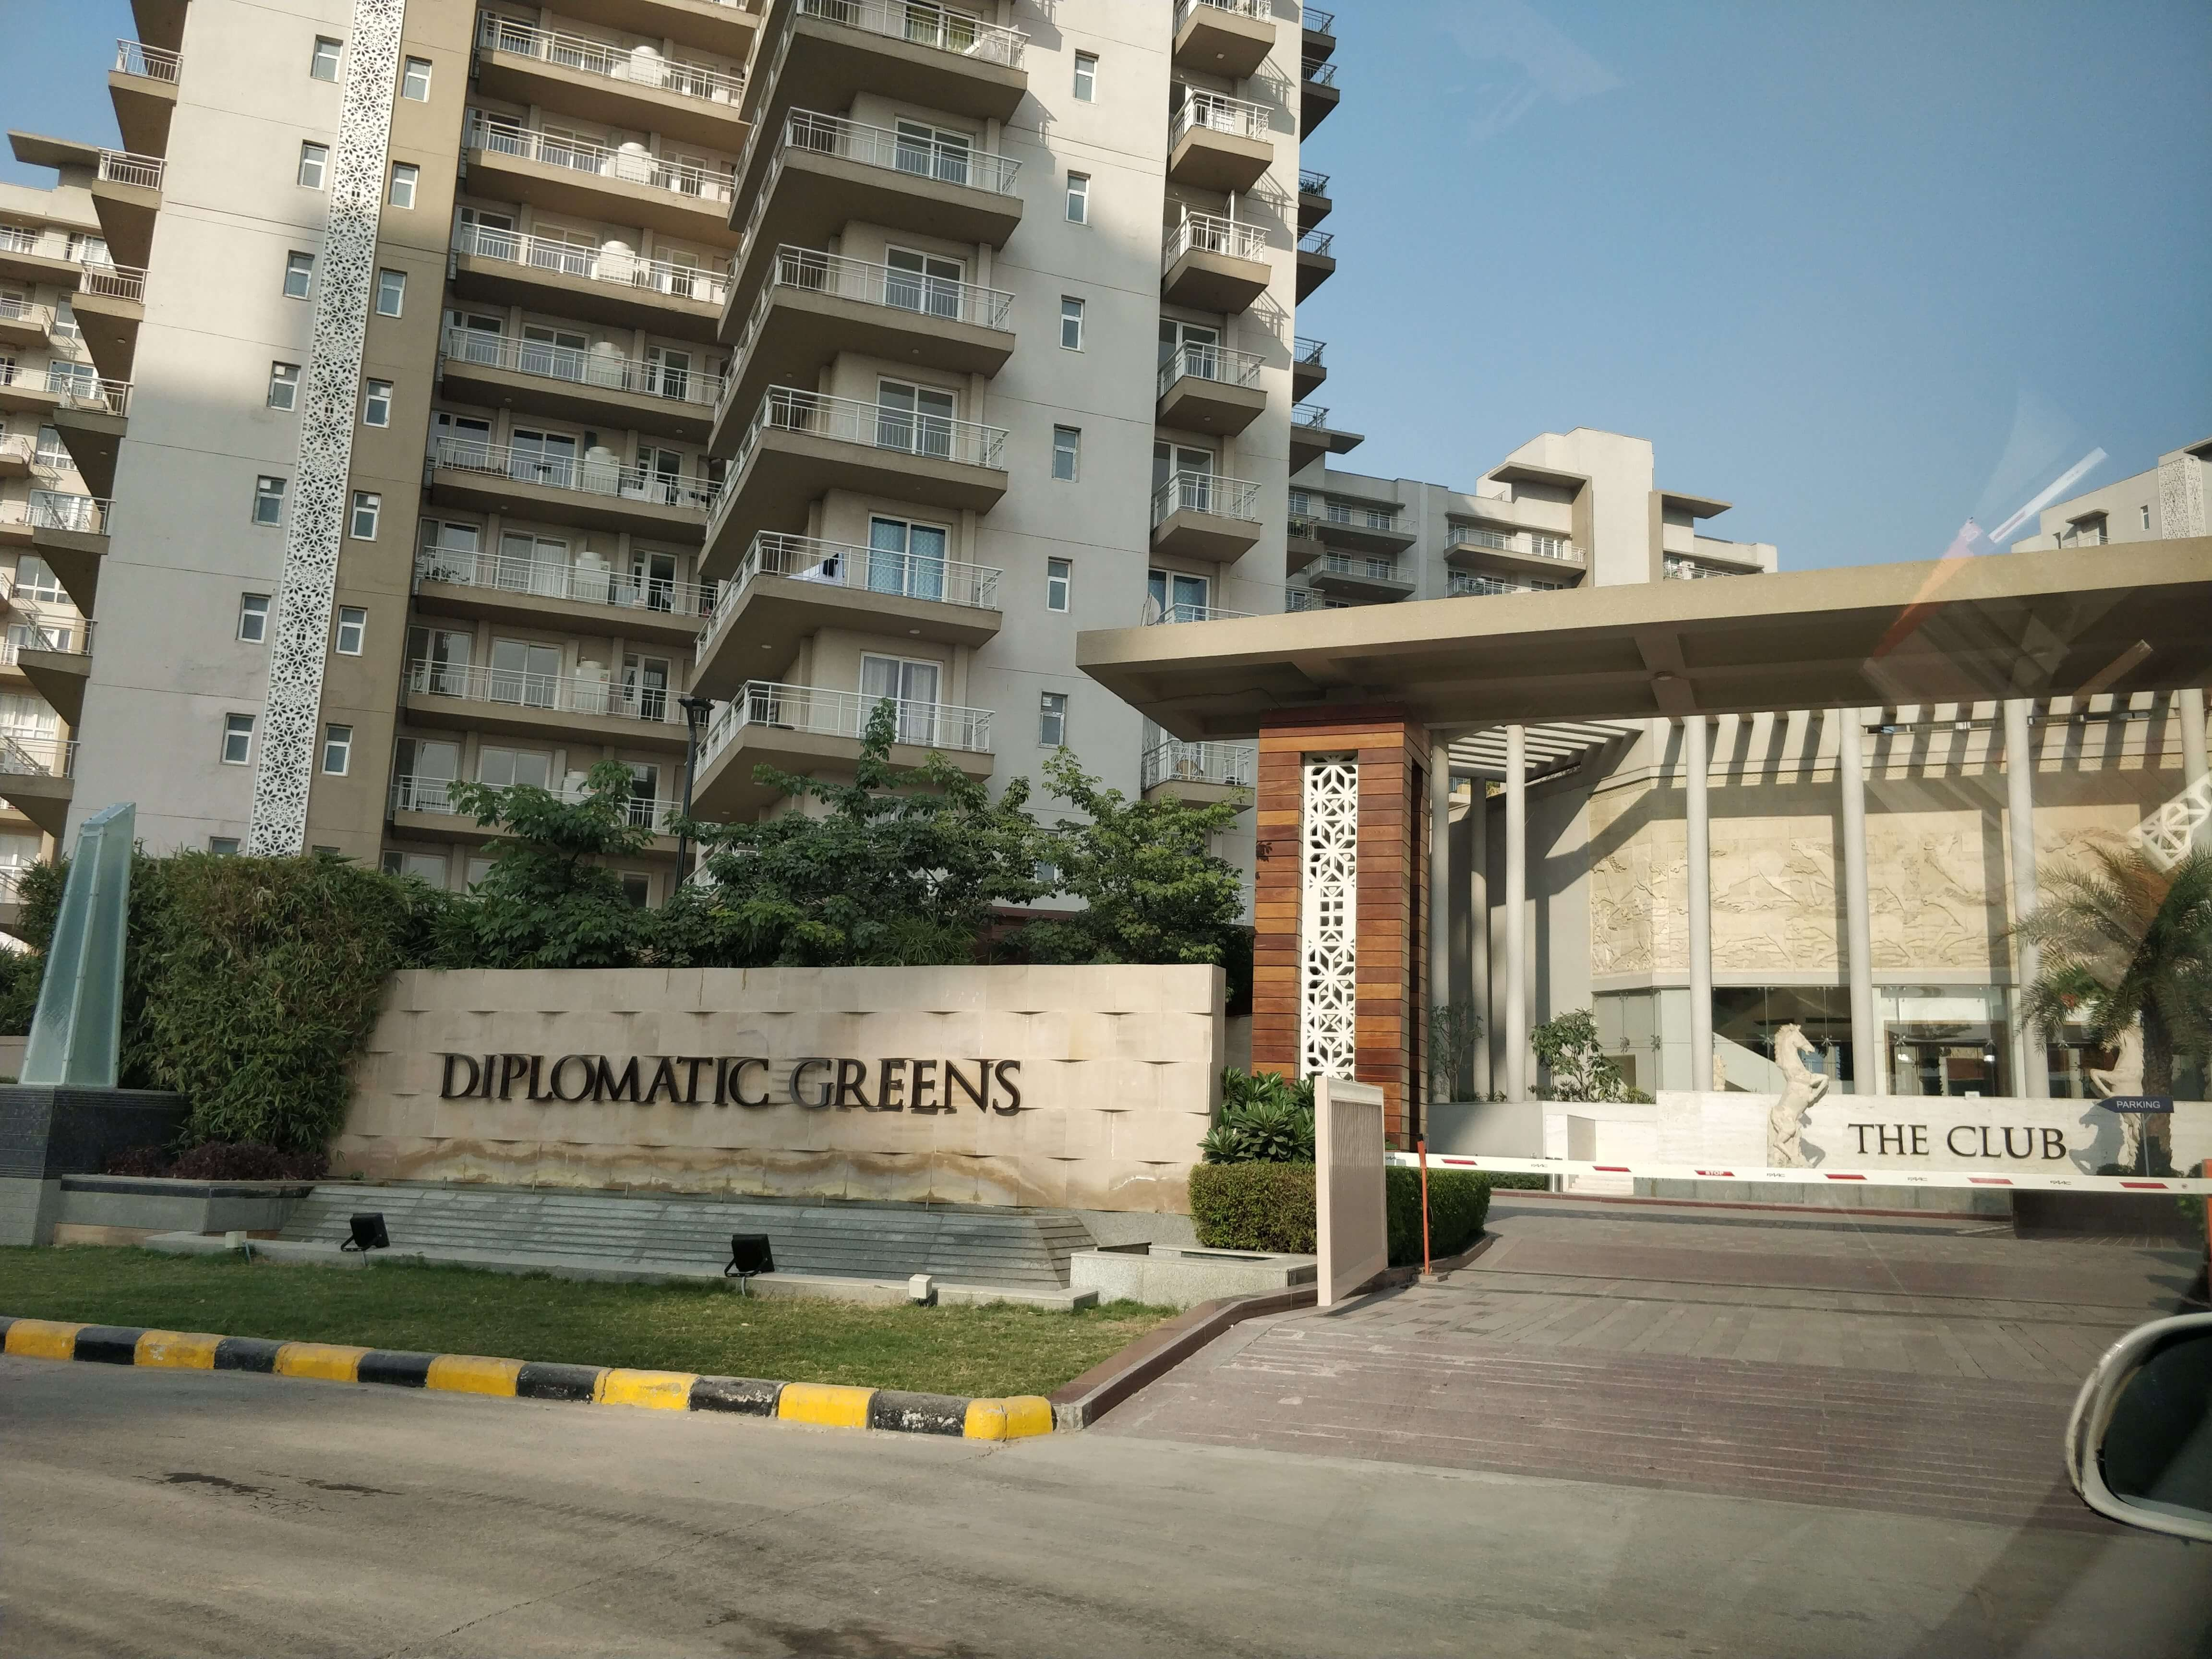 4 Bhk Apartments in Diplomatic Greens